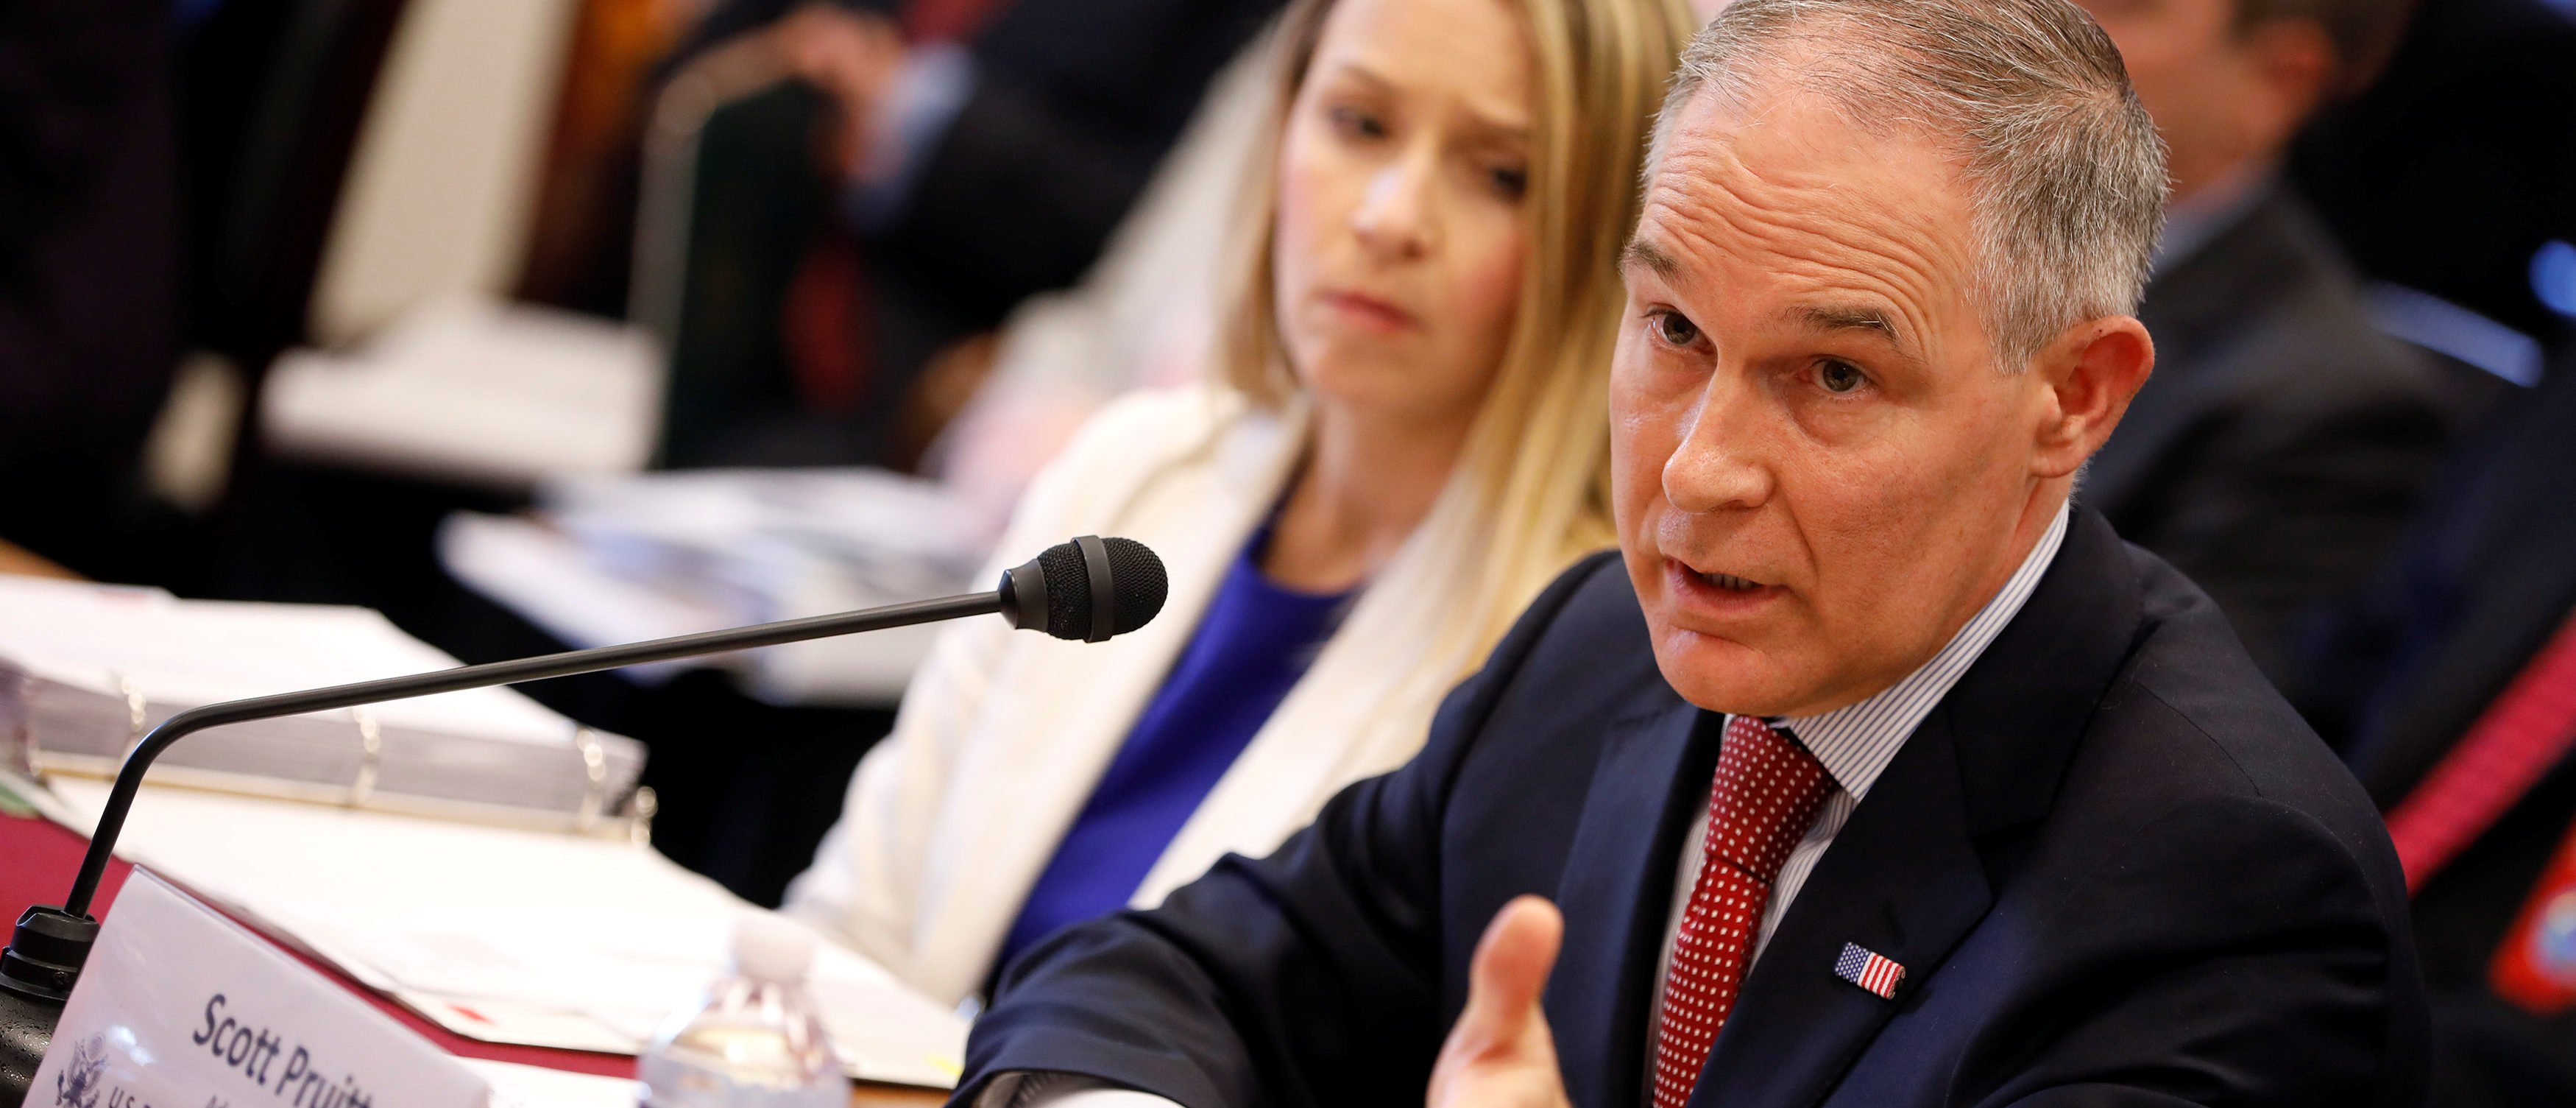 EPA Administrator Scott Pruitt testifies before the House Appropriations Committee Subcommittee on Interior, Environment, and Related Agencies Subcommittee on Capitol Hill in Washington, U.S., April 26, 2018. REUTERS/Aaron P. Bernstein - RC1550CA3740